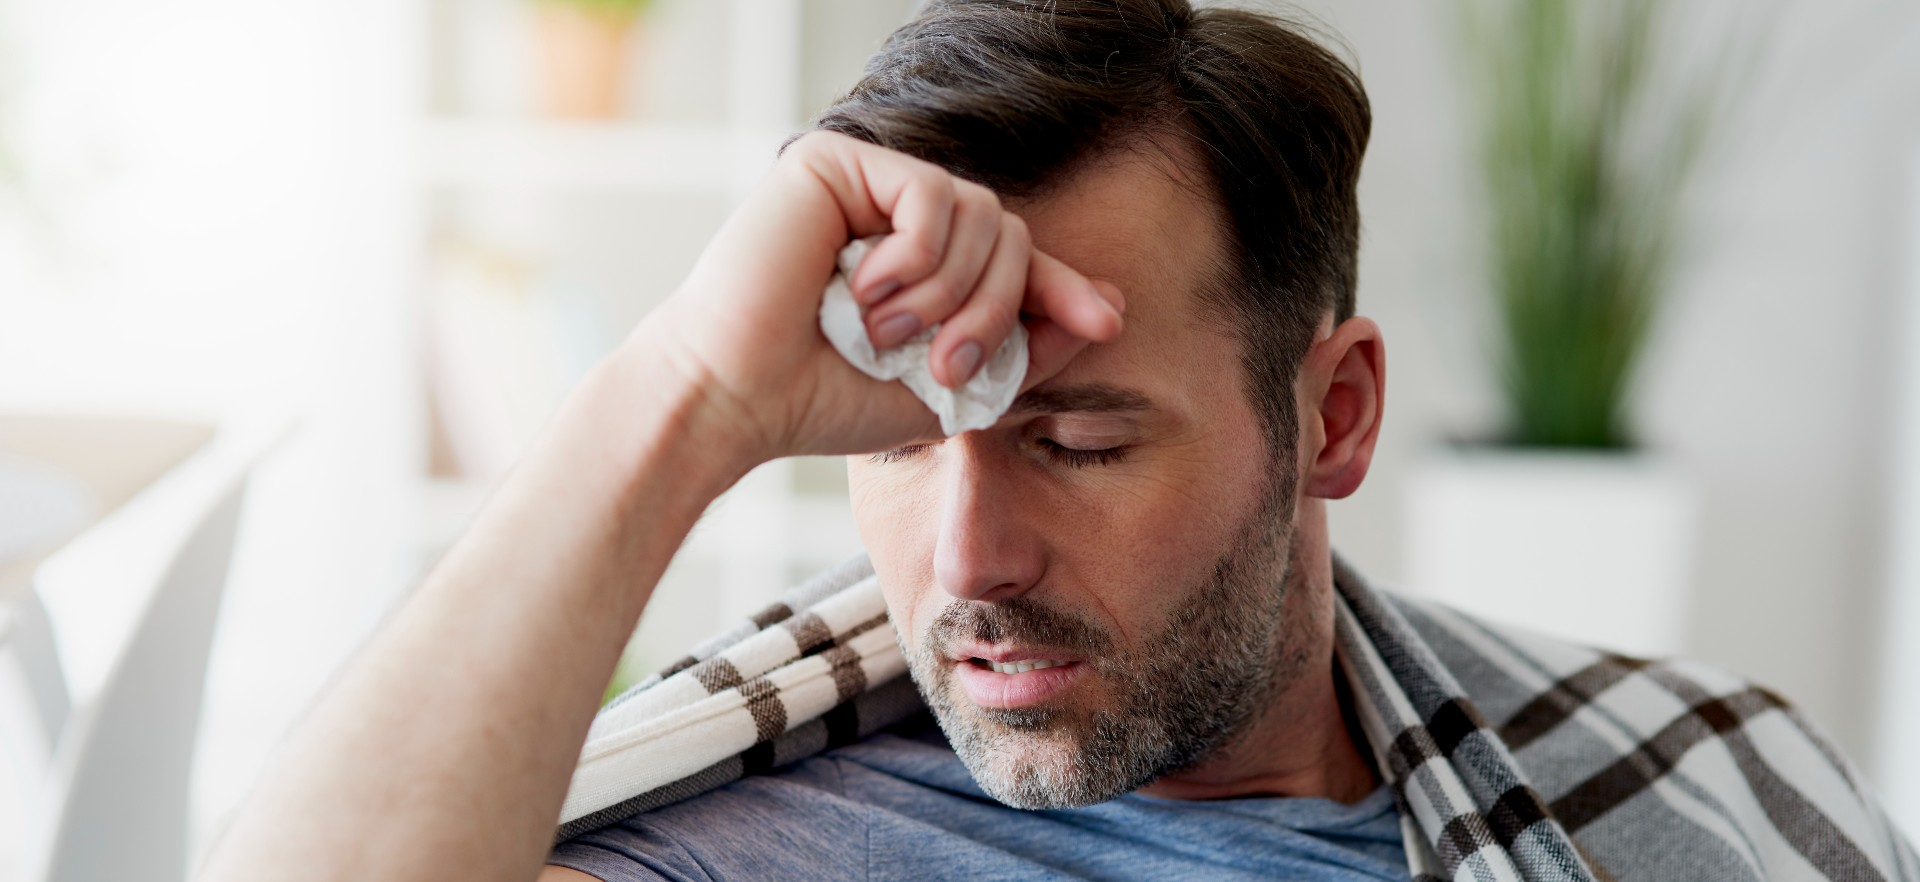 Man with his hand to his head who is not feeling well